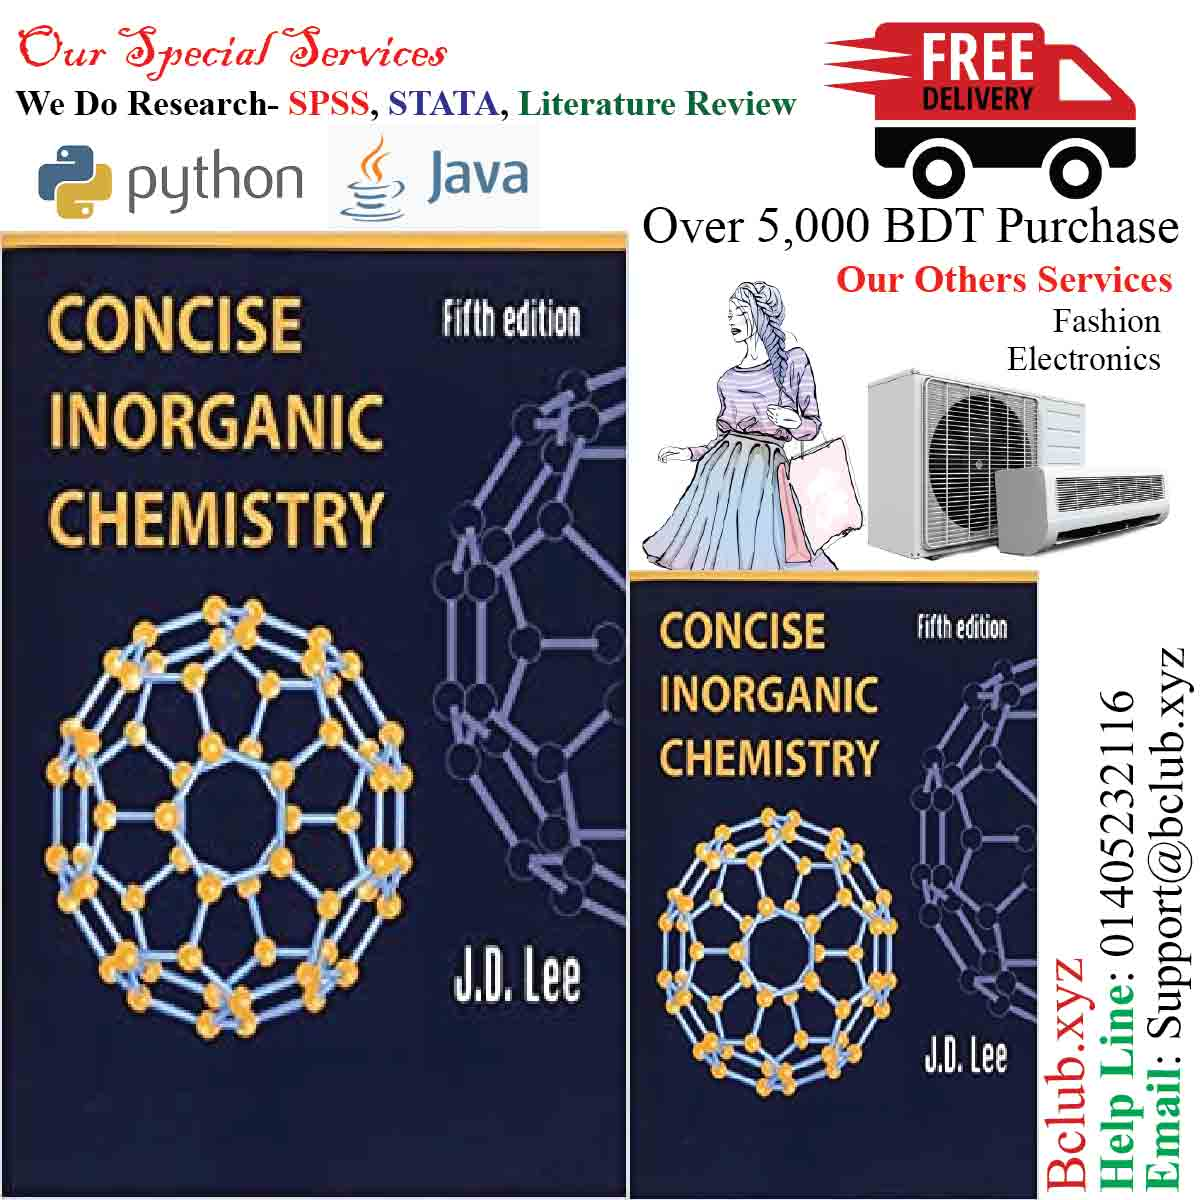 Concise Inorganic Chemistry by J. D. Lee